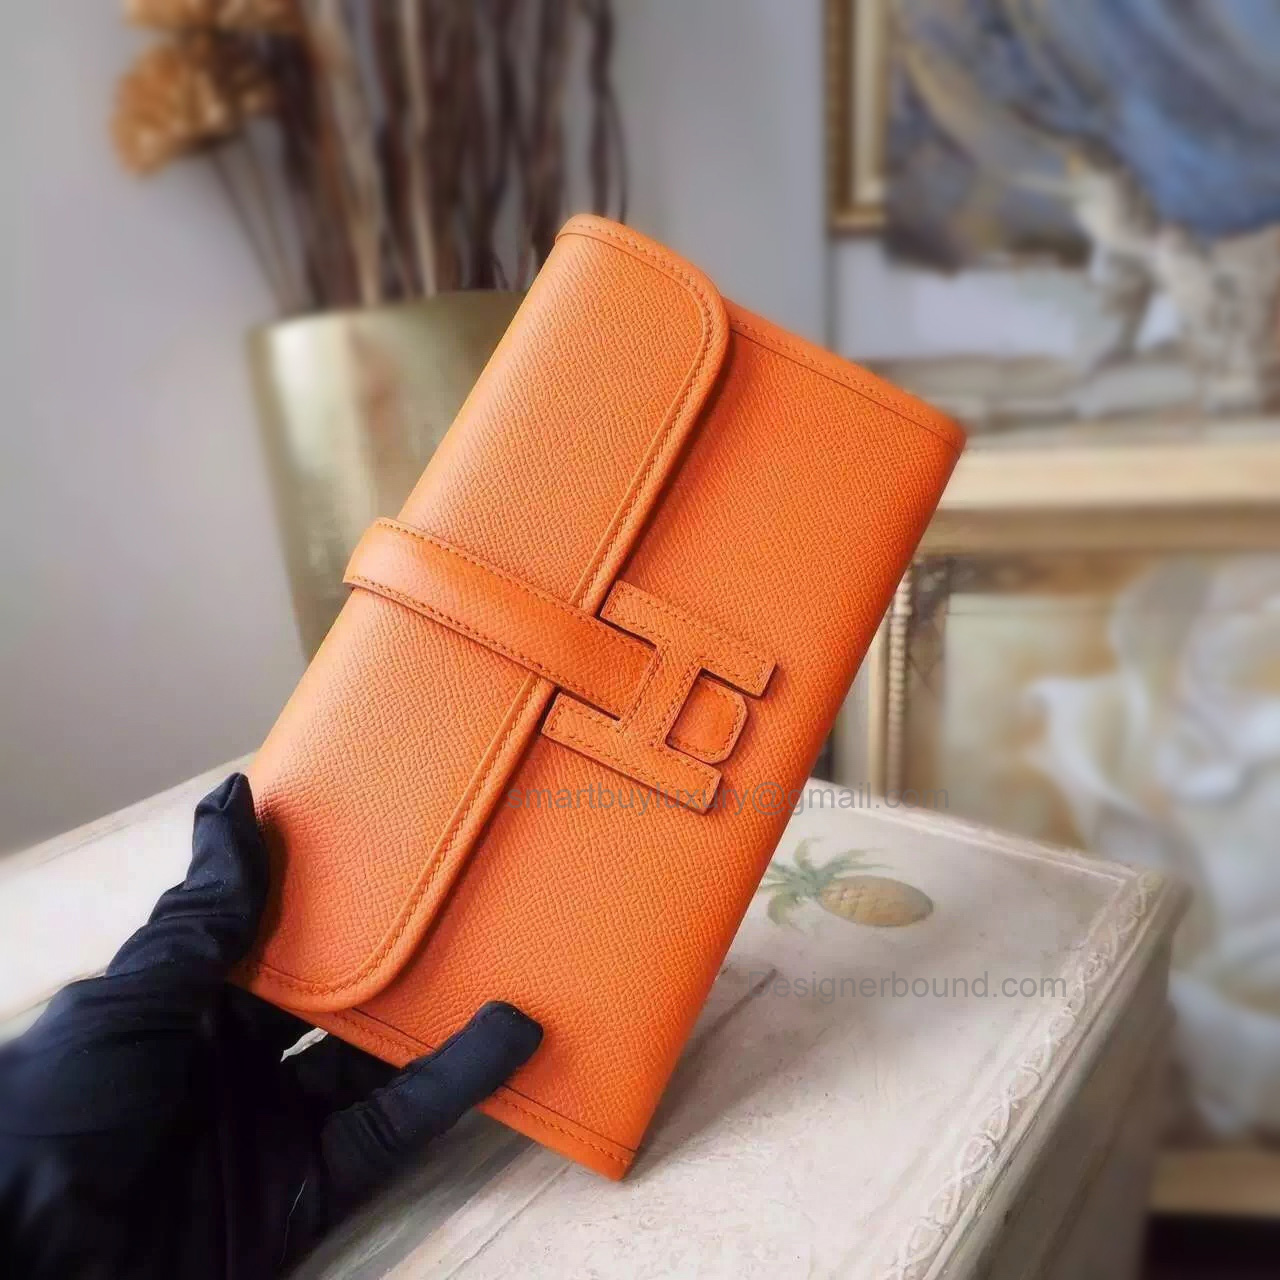 Copy Hermes Jige Mini Clutch Handmade in Orange ck93 Epsom Calfskin